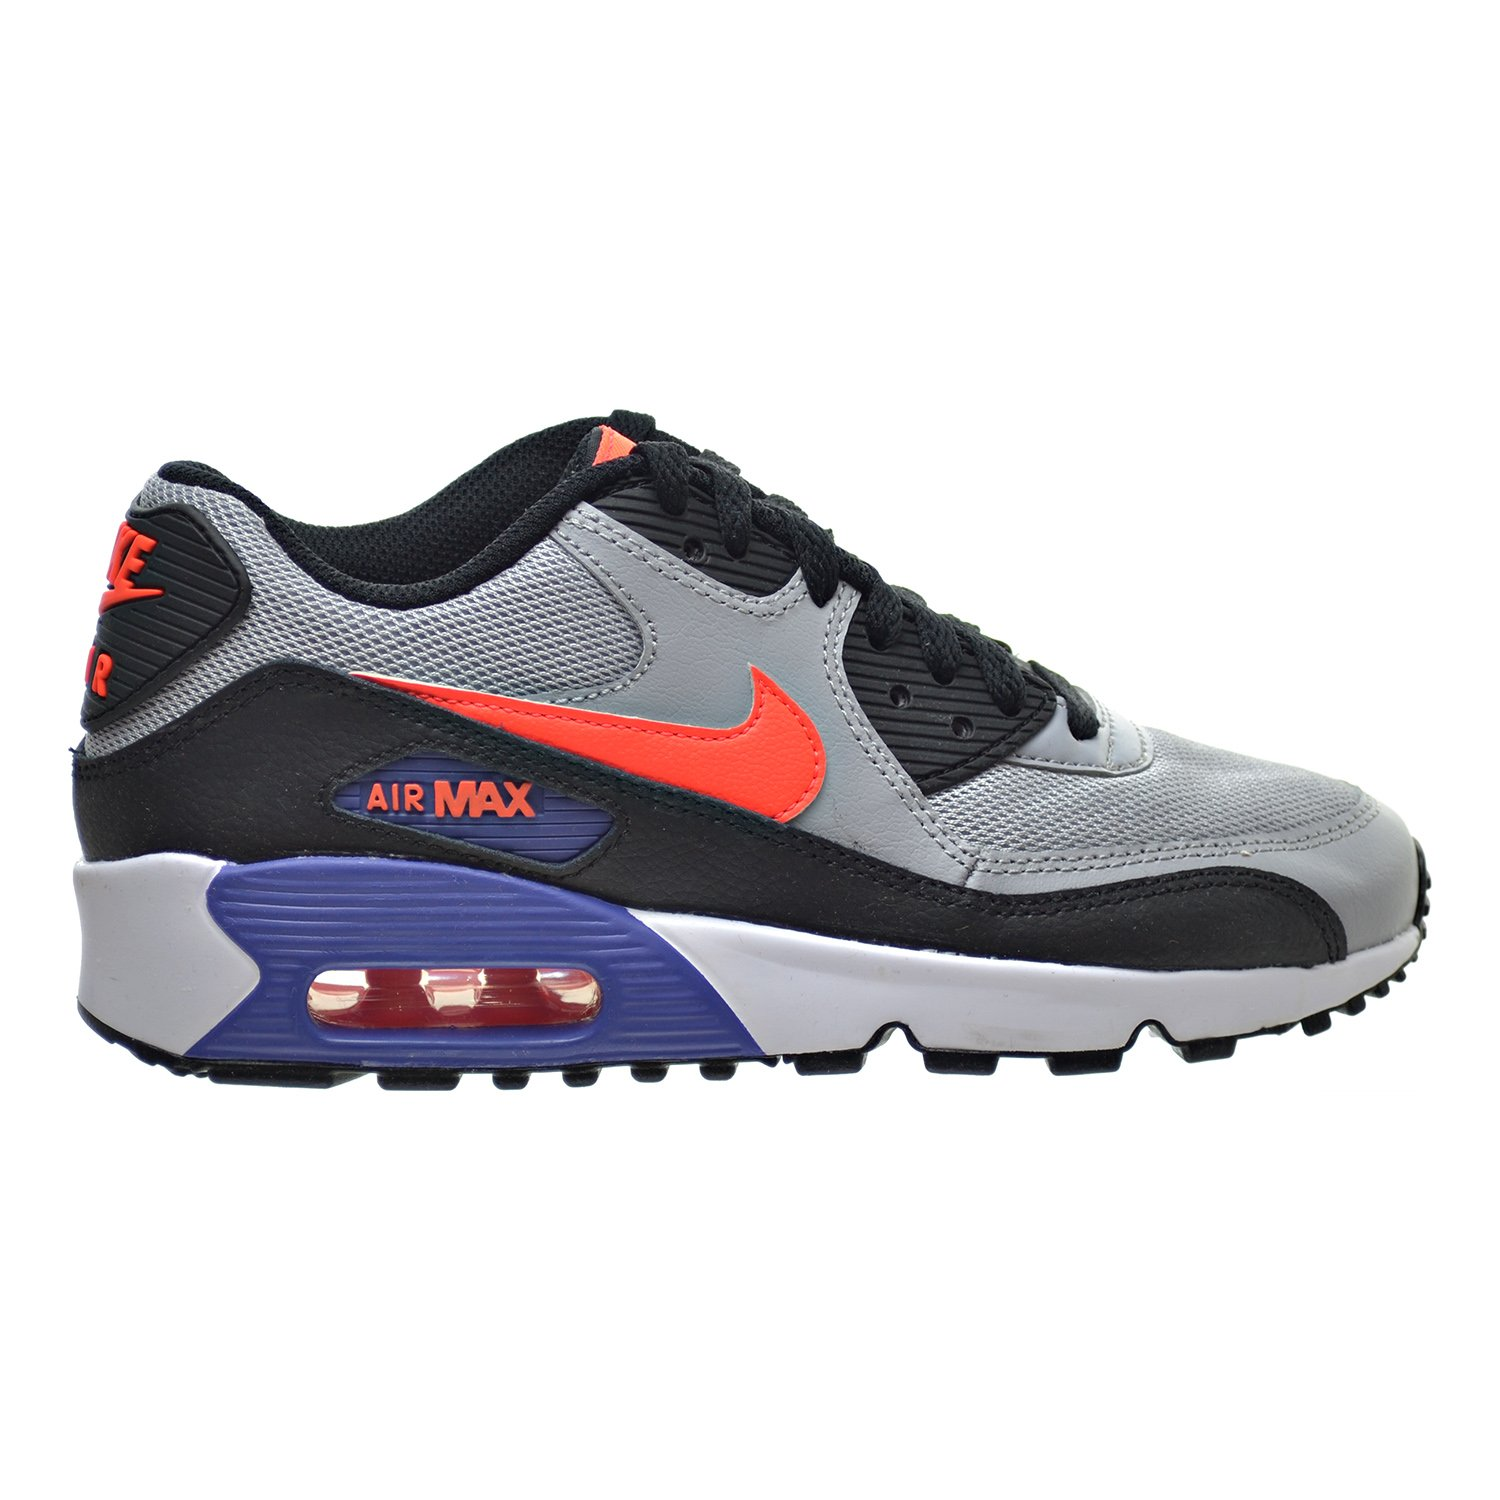 online retailer d99ff 50388 Amazon.com   Nike Air Max 90 Mesh(GS) Big Kids Shoes Wolf Grey Crimson Dark  Purple 833418-002 (6 M US)   Running